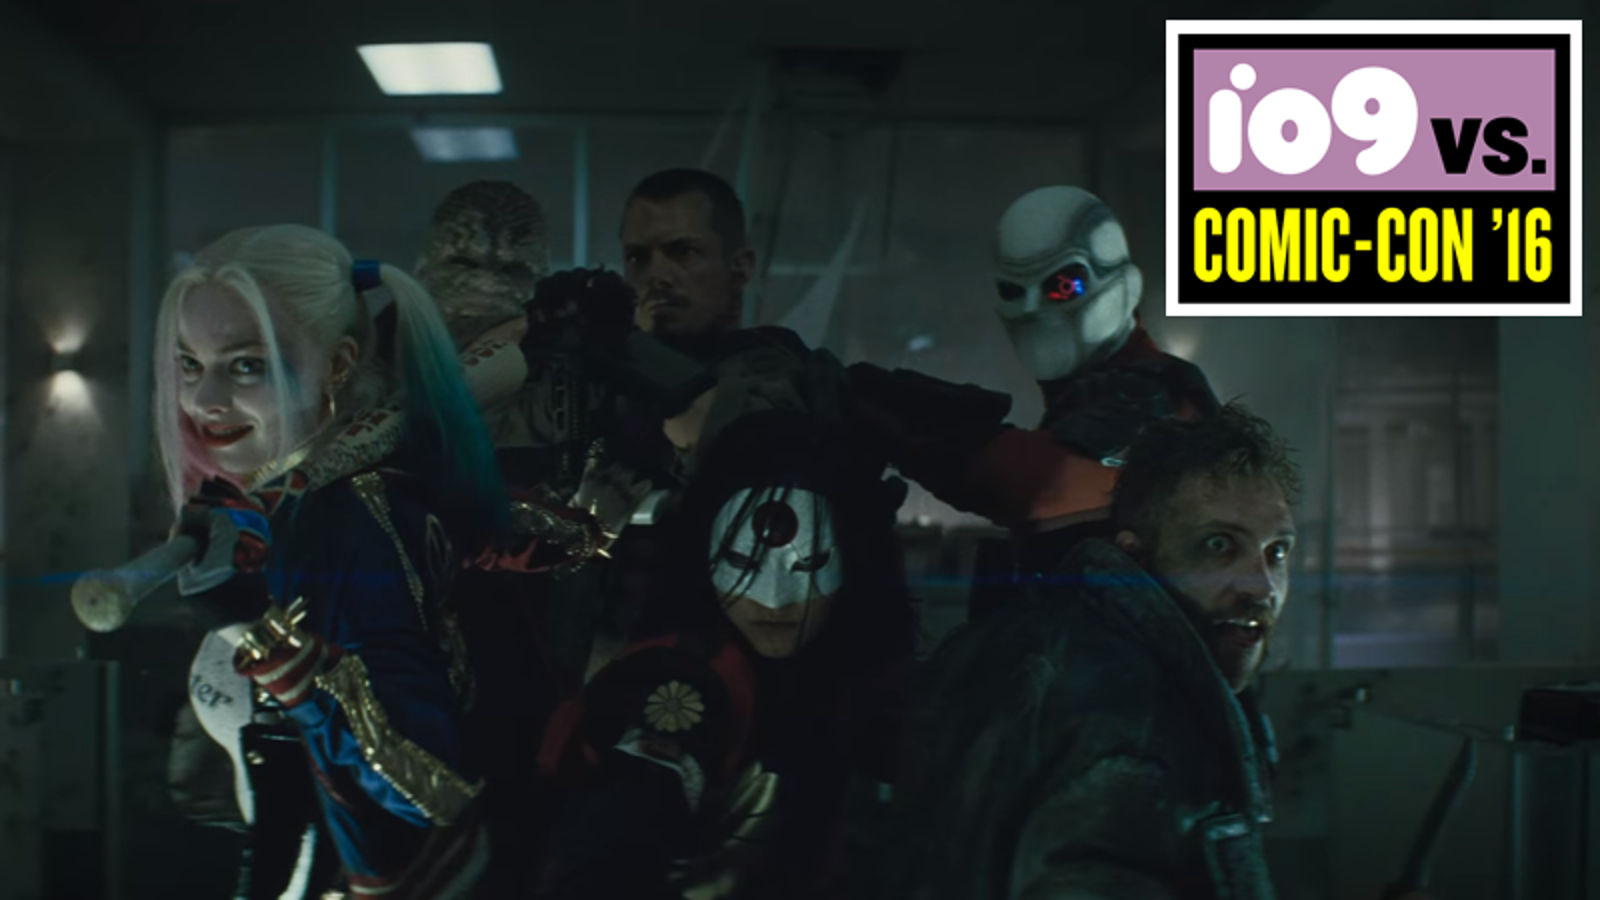 The Latest Suicide Squad Trailer Brings on the Bad Guys, and Then Brings the Noise